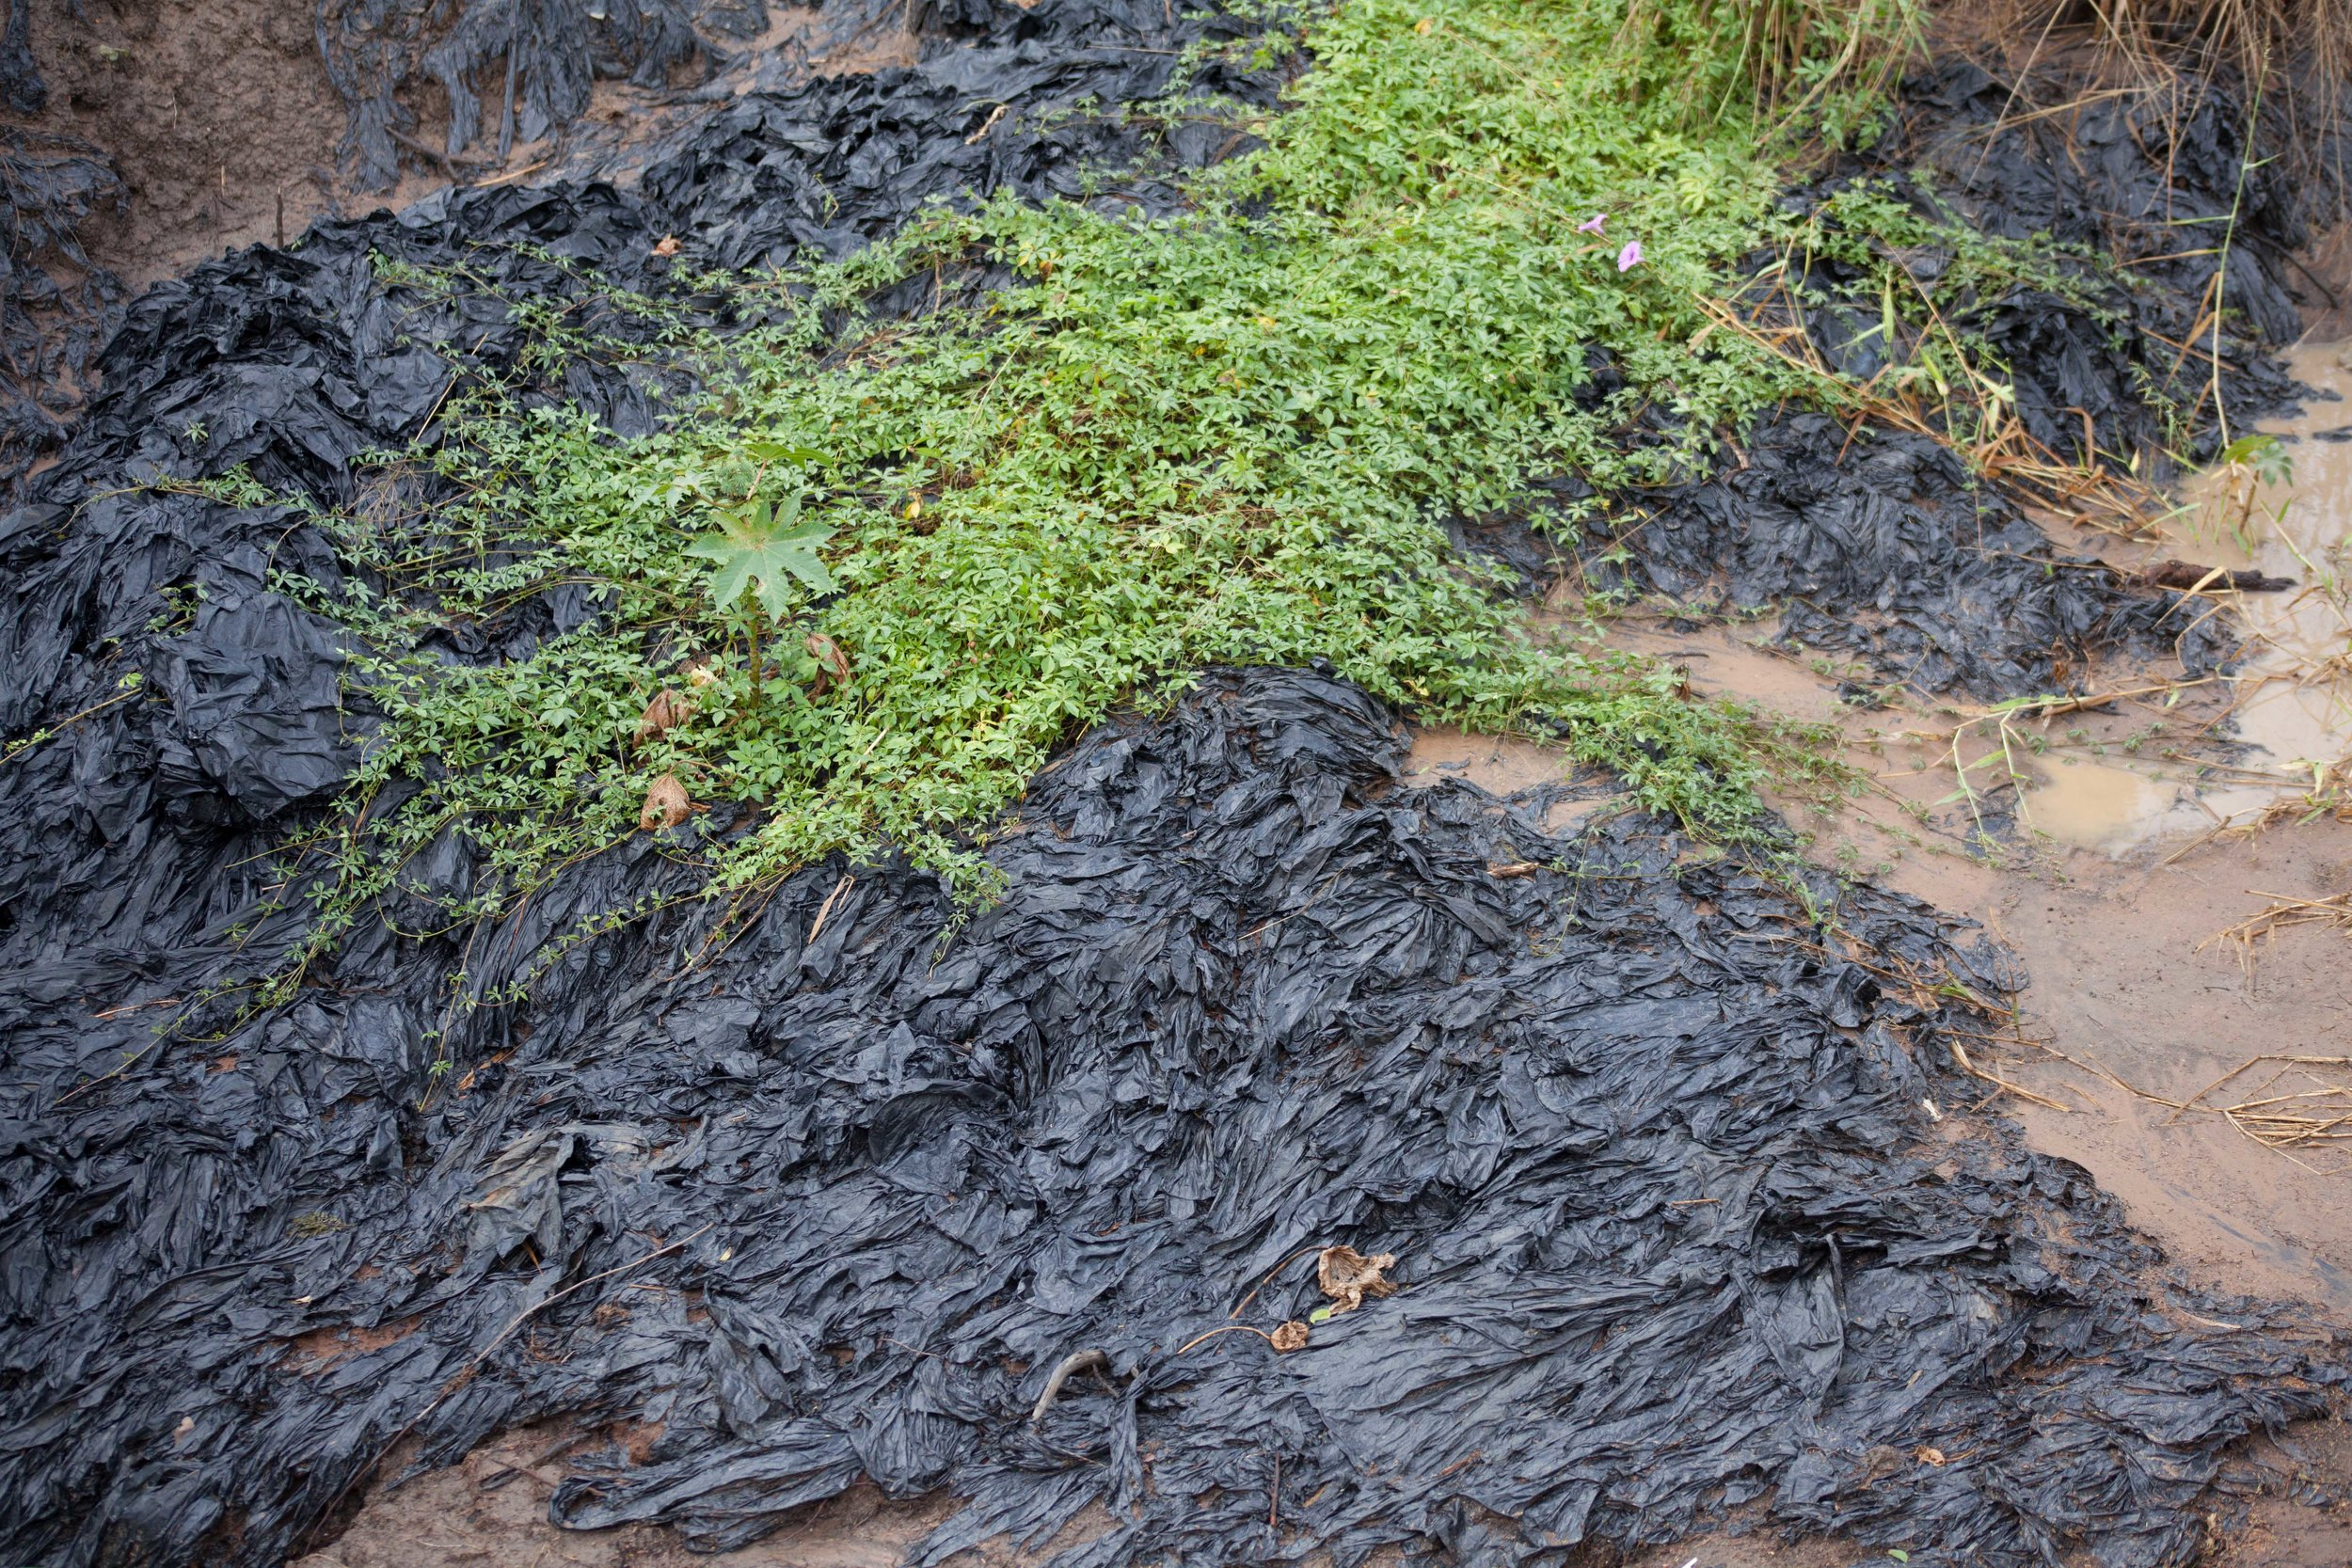 Plastic pollution from pineapple farming lining a section of the bank of the Mzinine river,Ukuwela conservancy South Africa.